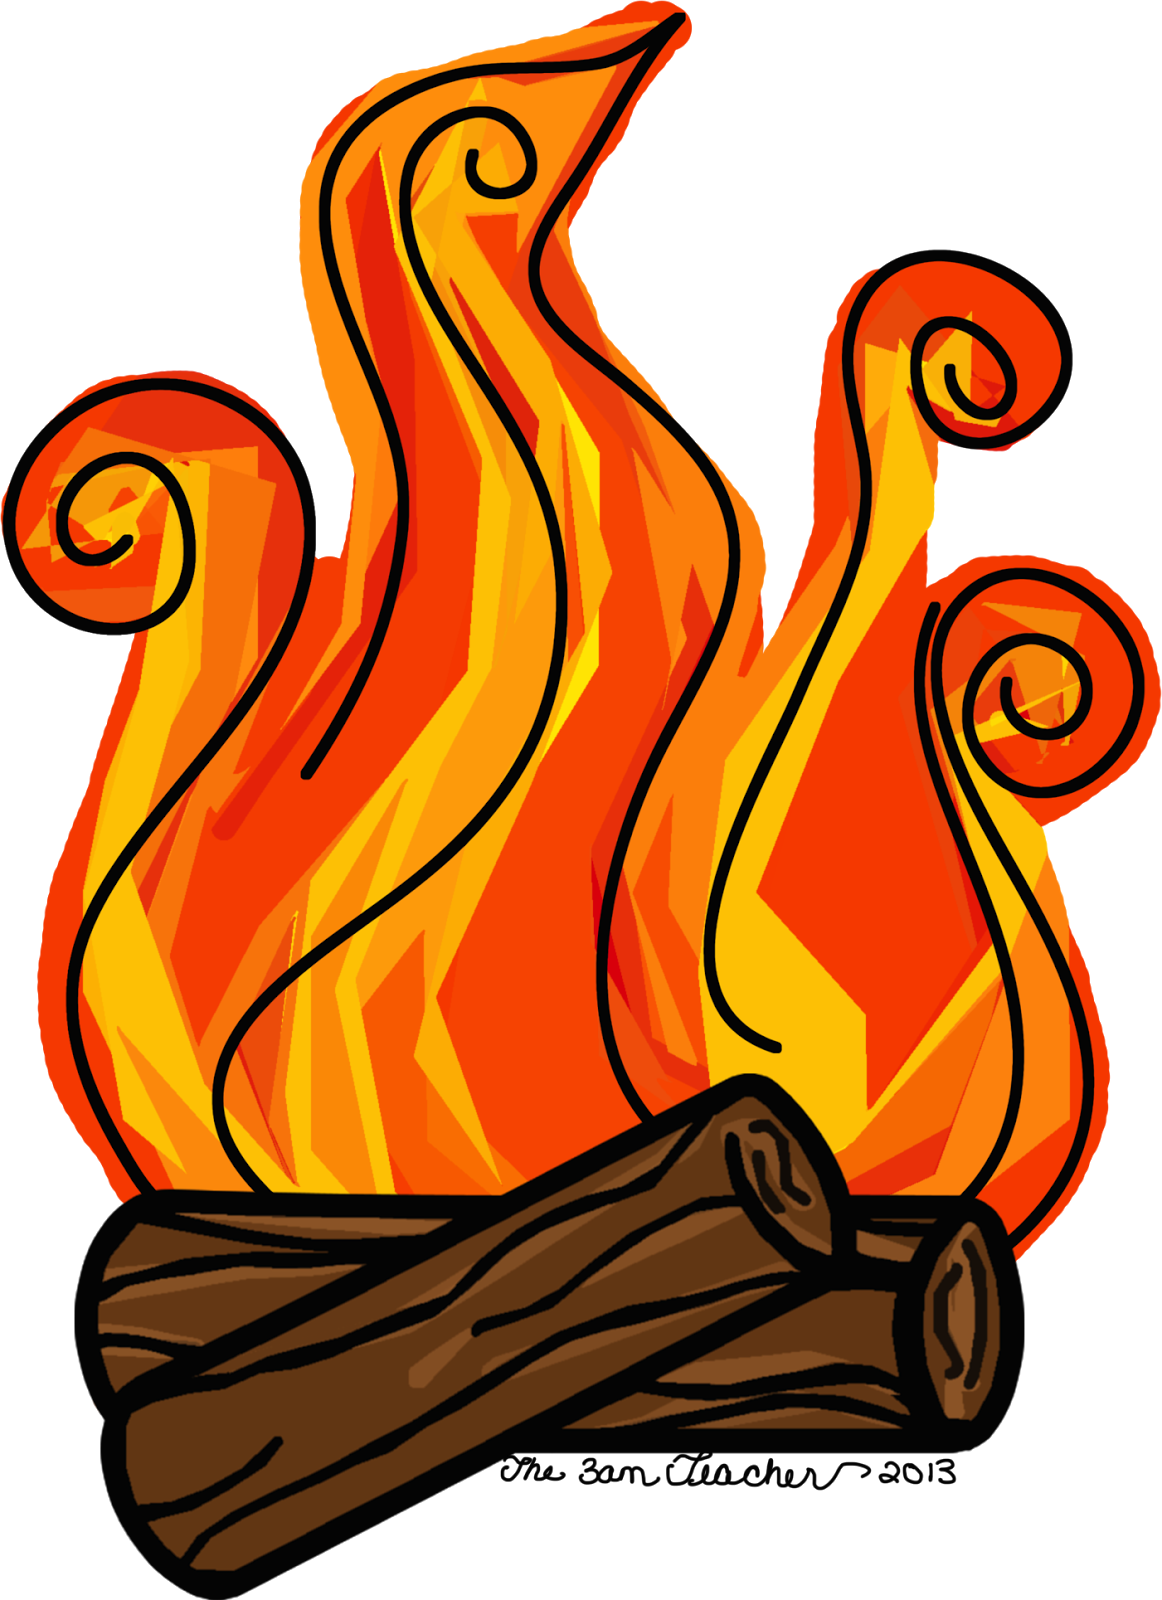 clipart fireplace fire - photo #14